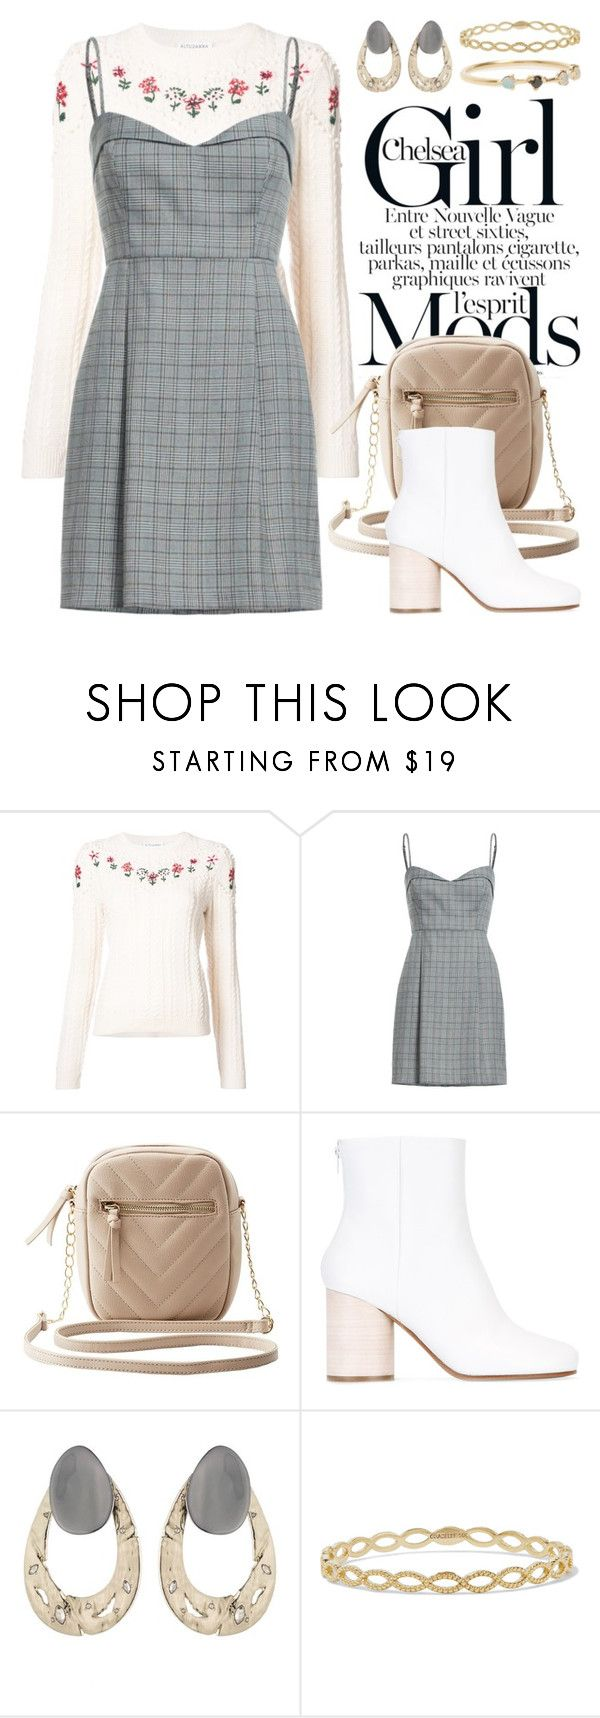 """Plaid 4609"" by boxthoughts ❤ liked on Polyvore featuring Altuzarra, Charlotte Russe, Maison Margiela, Alexis Bittar, Grace Lee Designs and WWAKE"